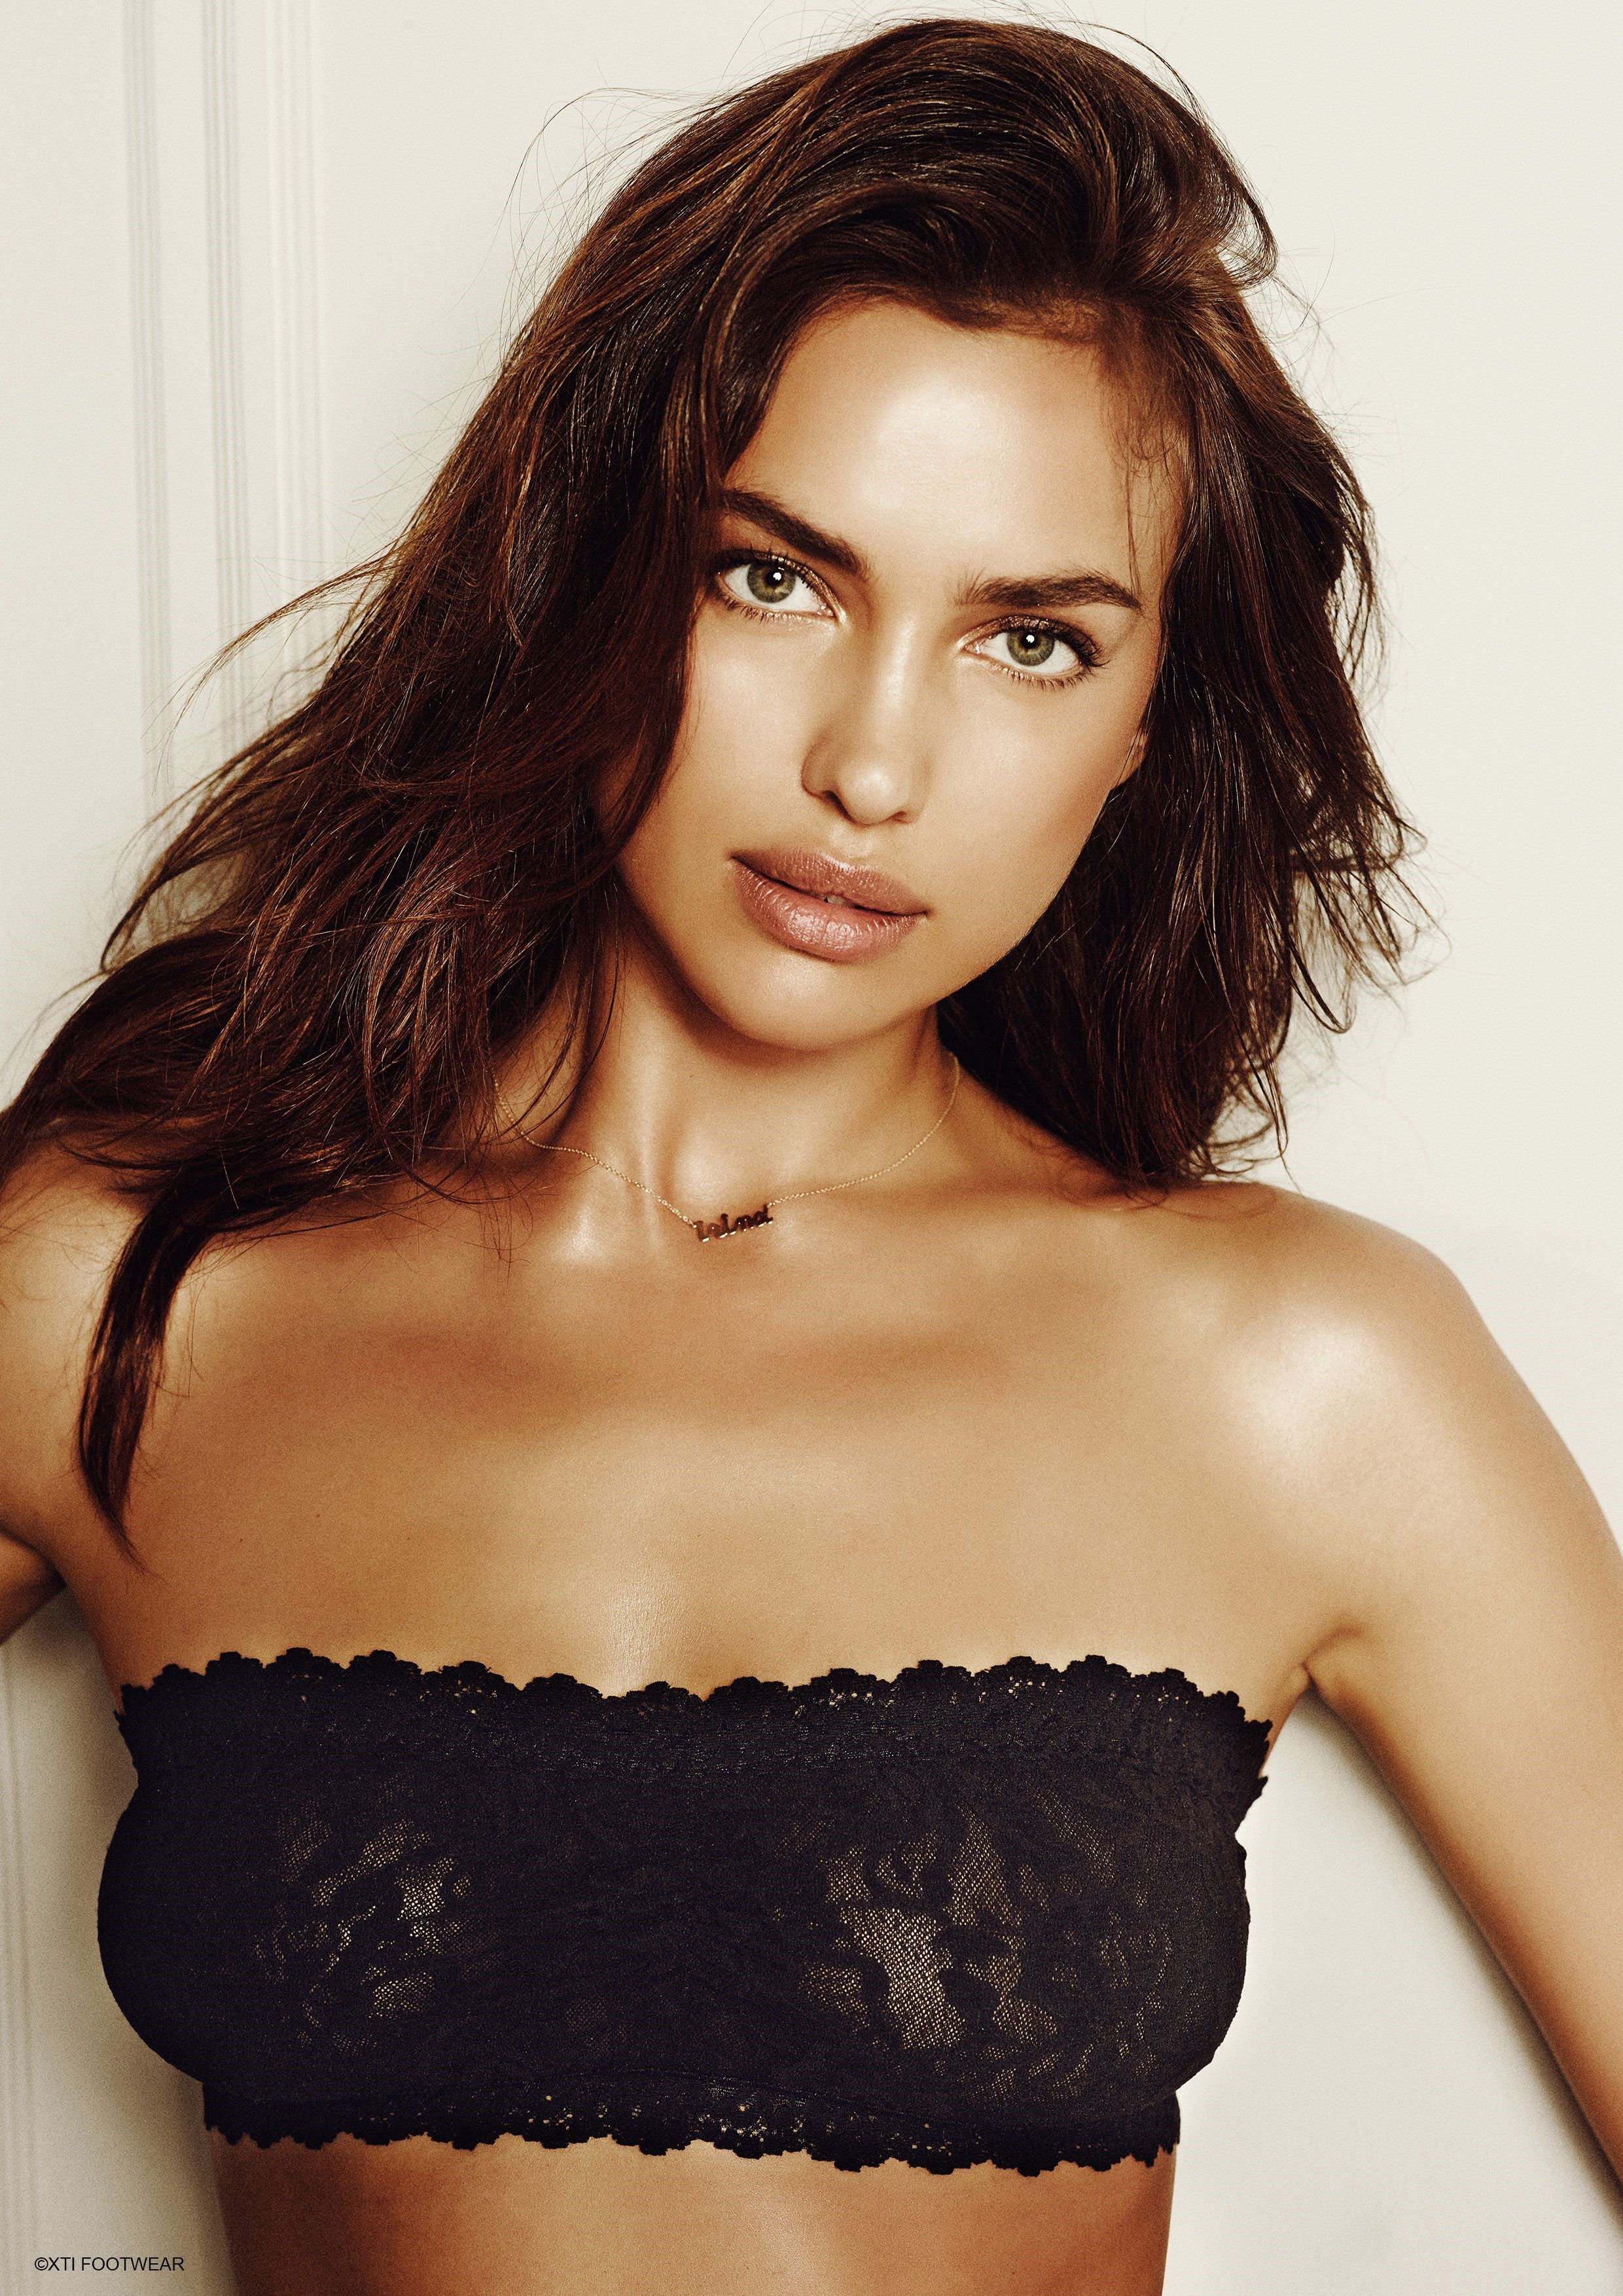 Irina Shayk Autumn Winter 2014 collection for the Spanish Shoe brand XTI September 3, 2014